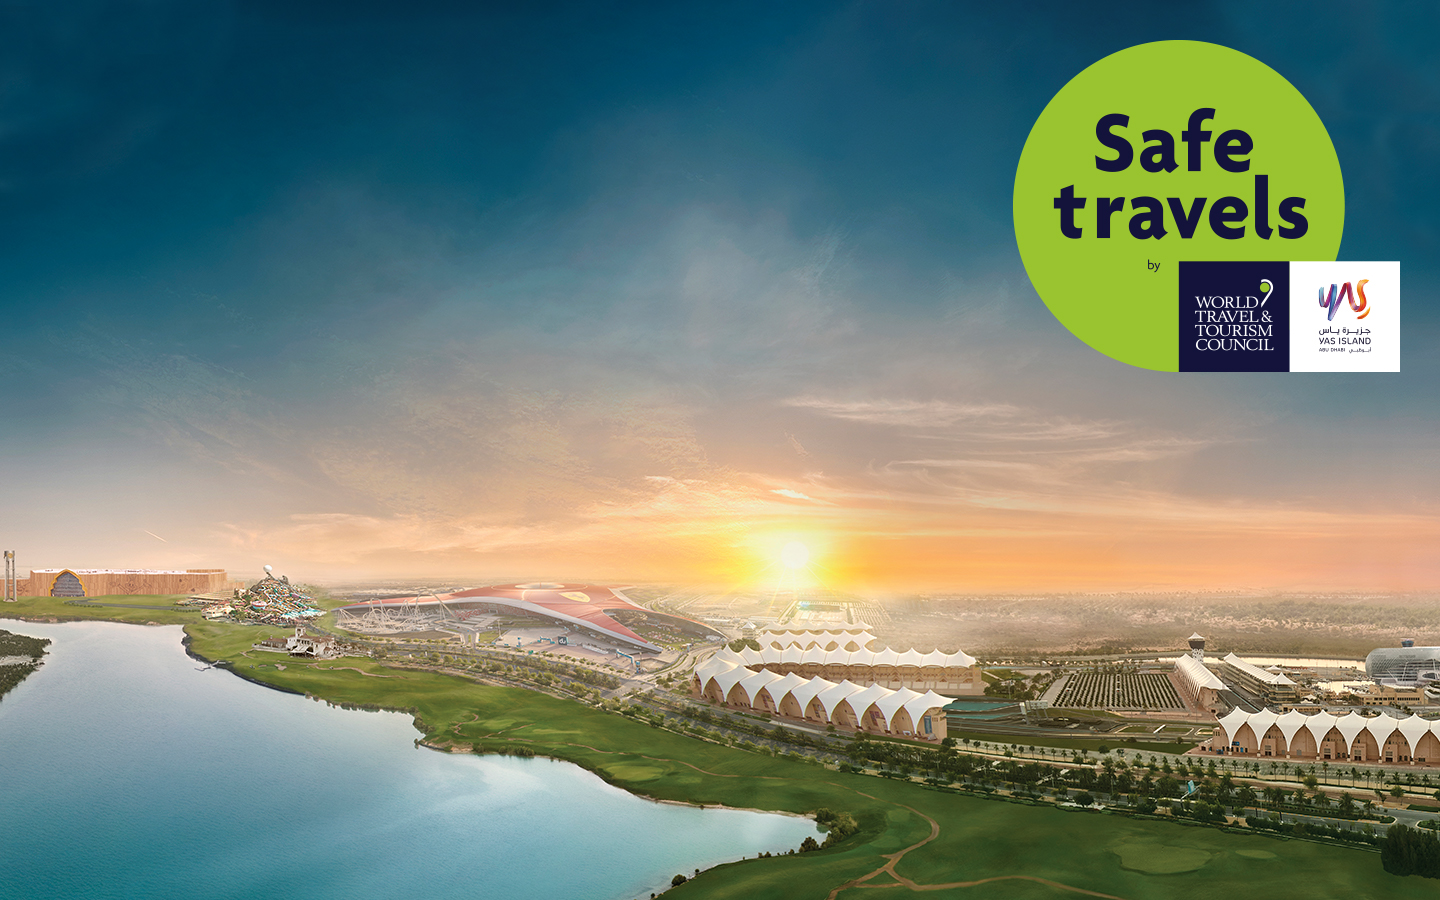 Photo: Yas Island first destination in Abu Dhabi to be awarded coveted WTTC 'Safe Travels' stamp